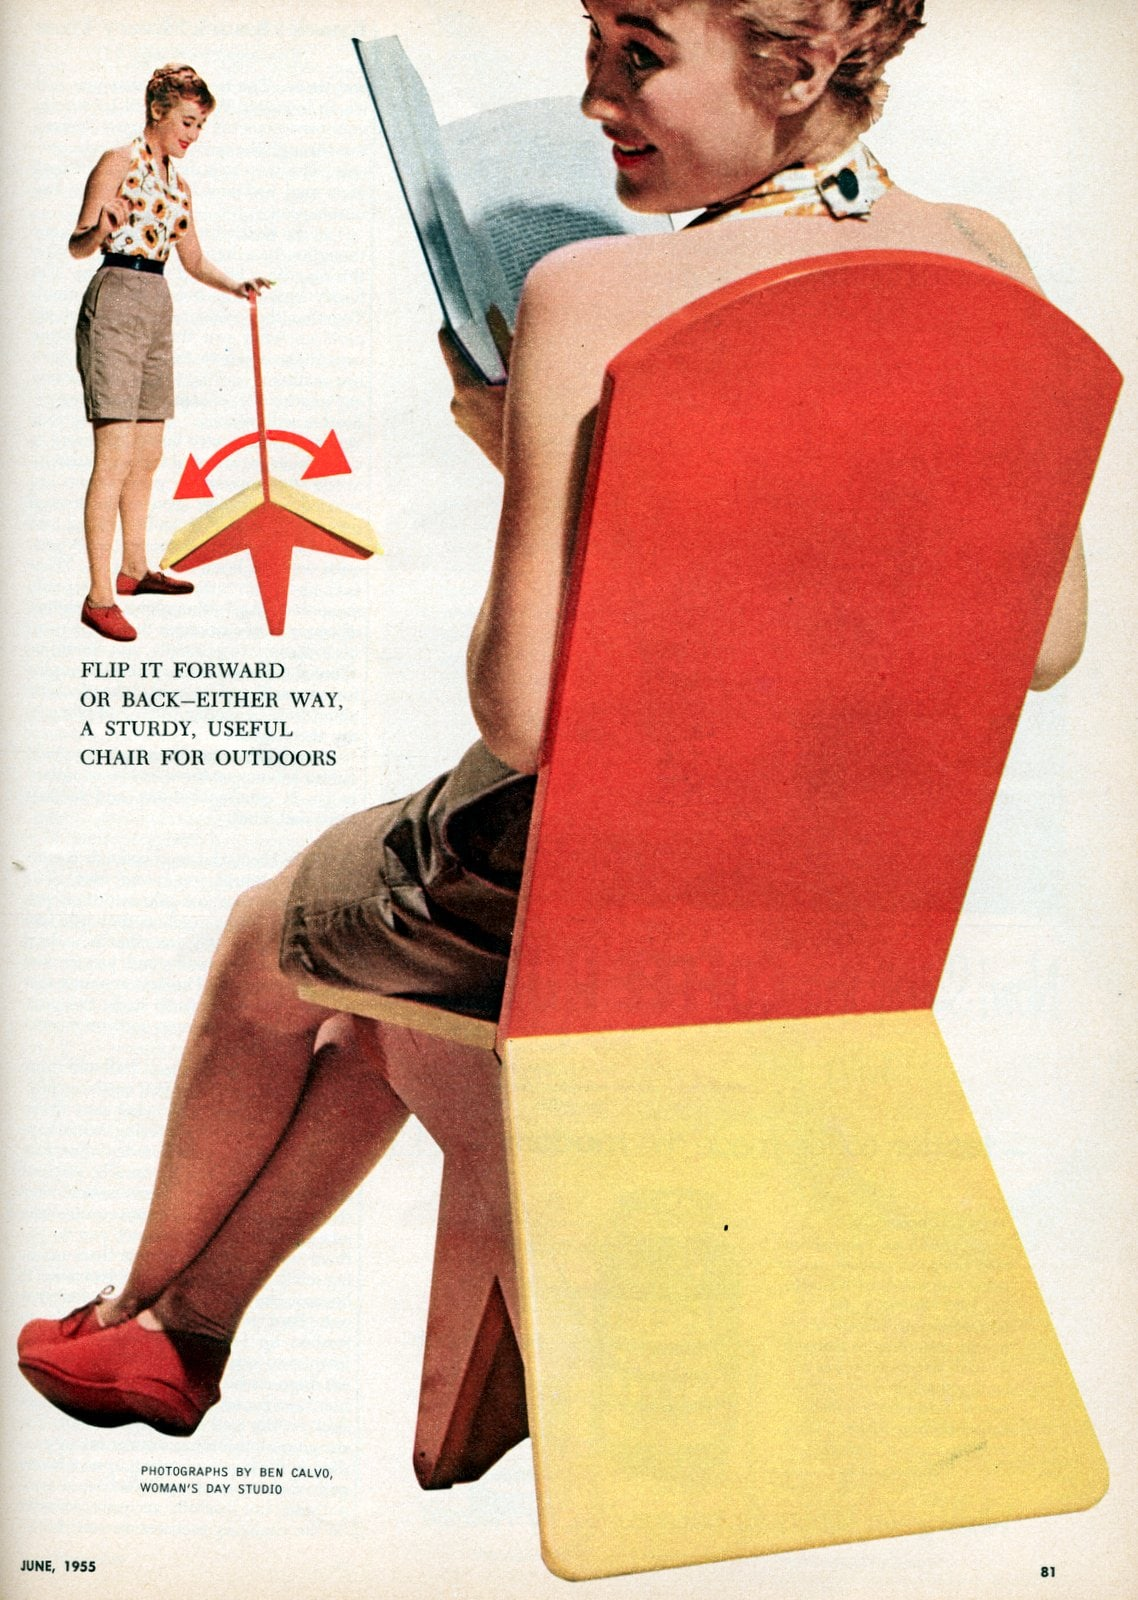 How to make a vintage-style flip-over chair (1955)